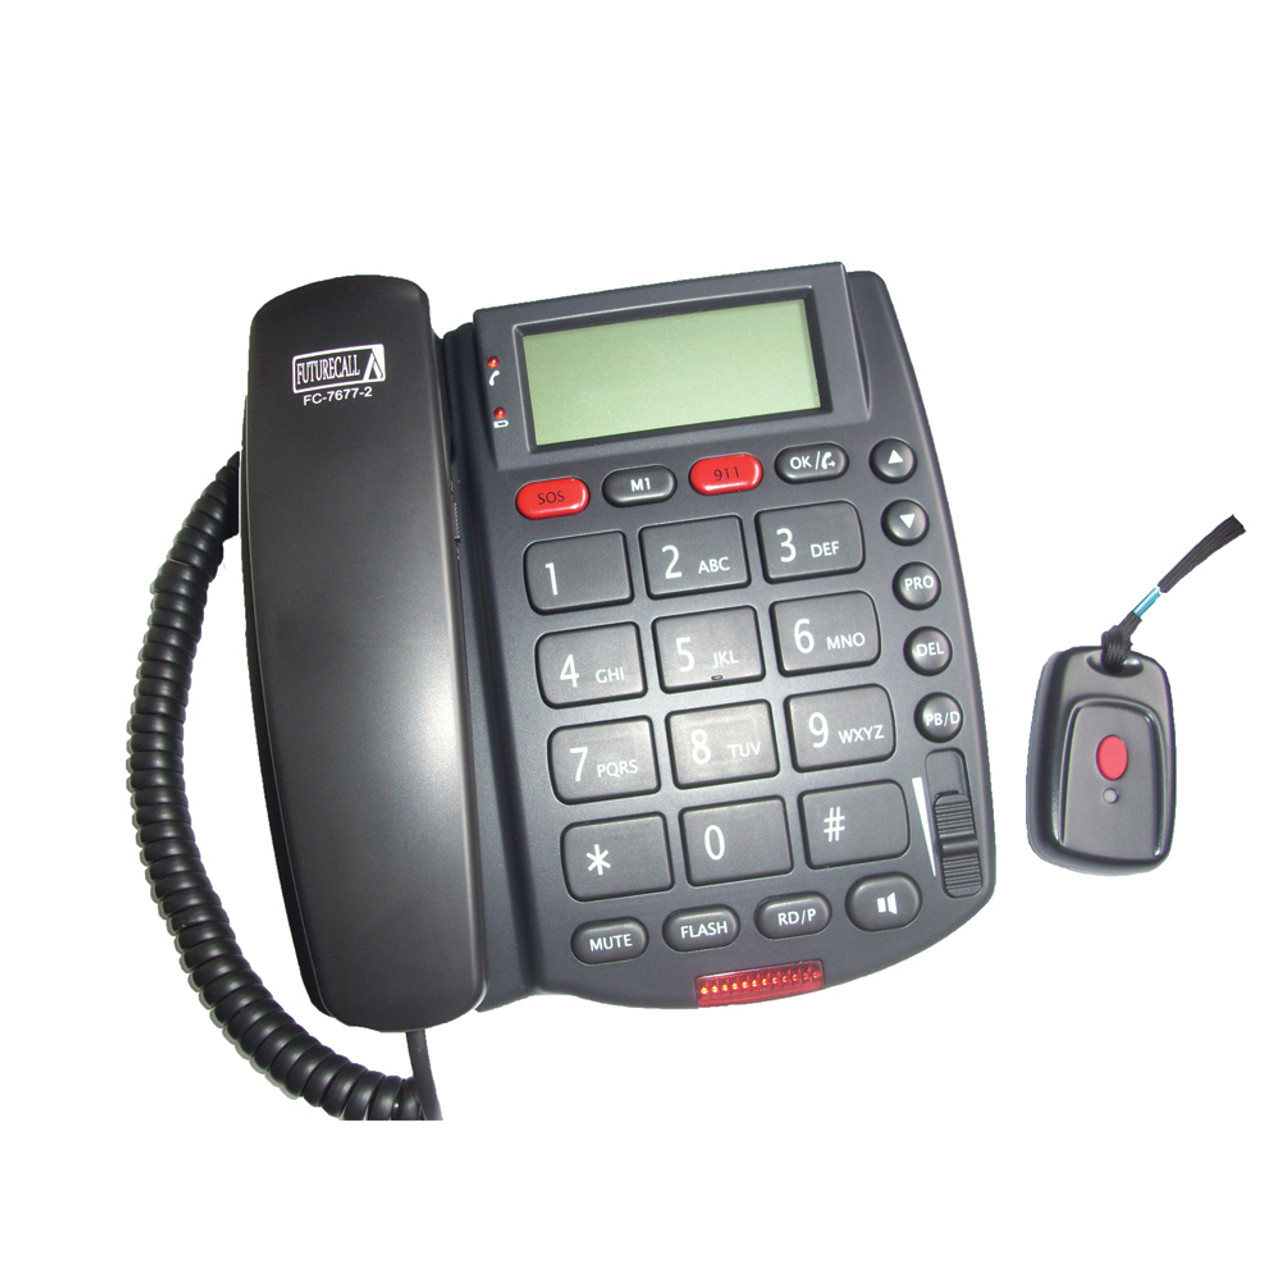 SOS Phone With 40dB Amplification